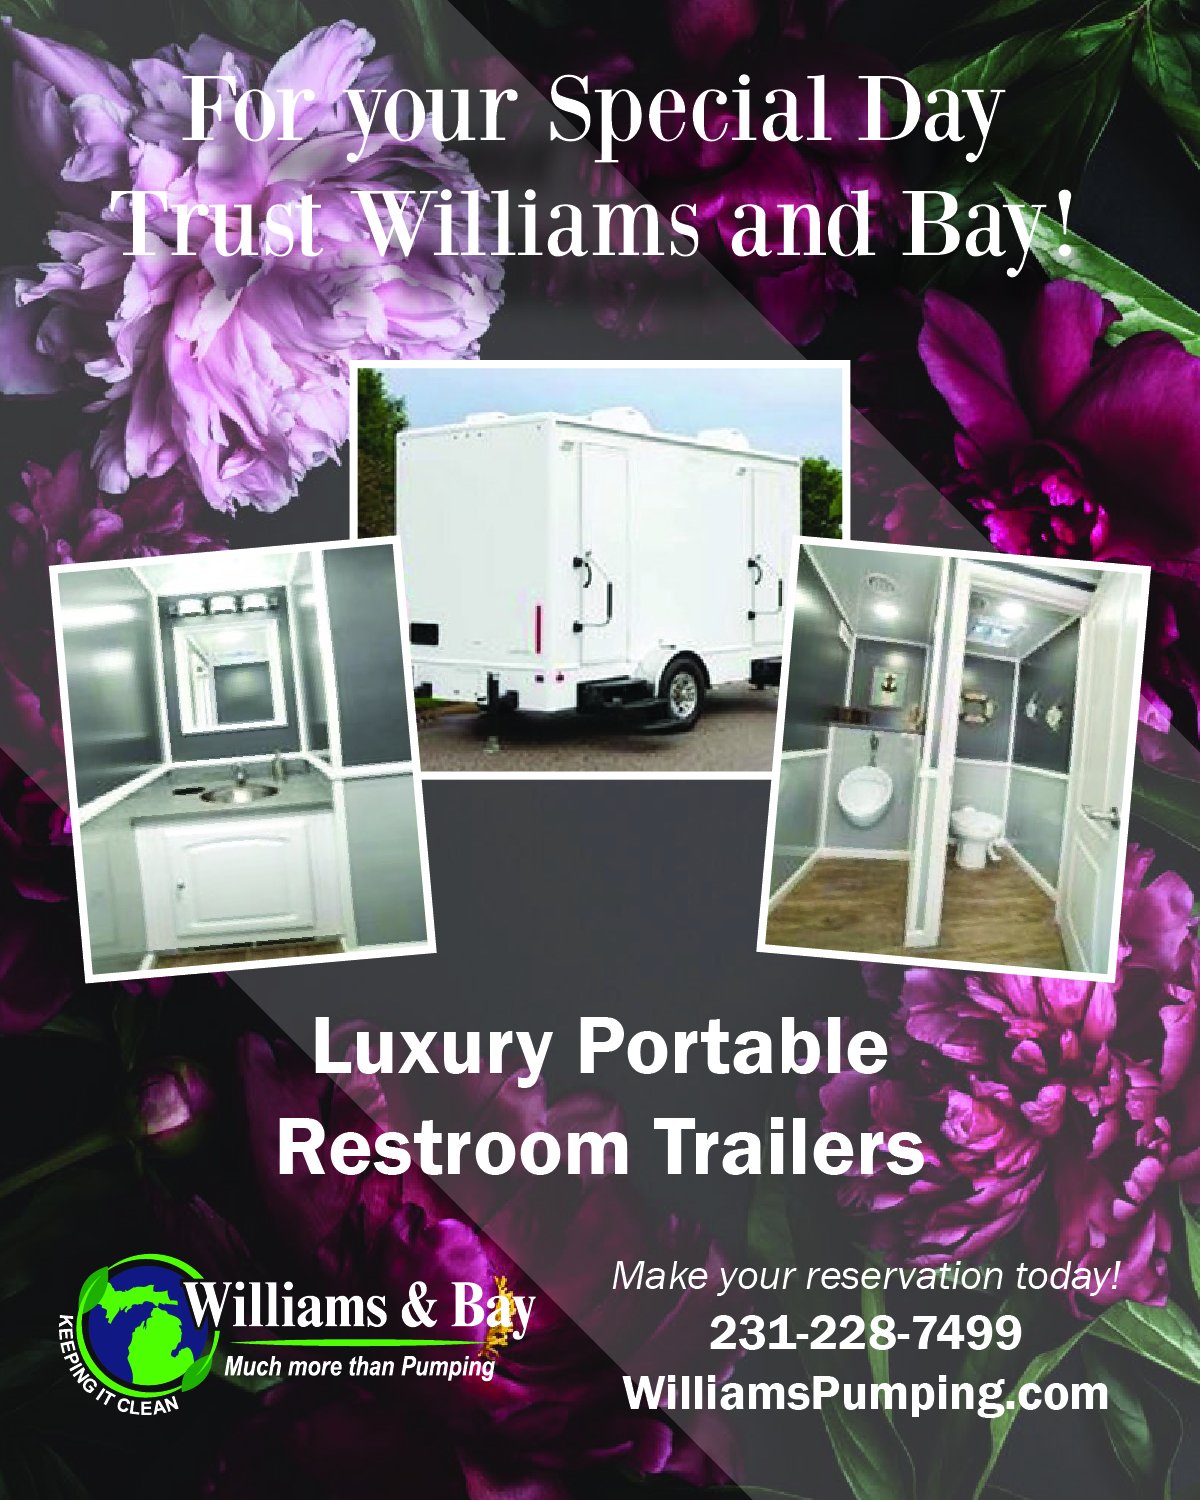 Trust Williams and Bay - 05-14-2021-01